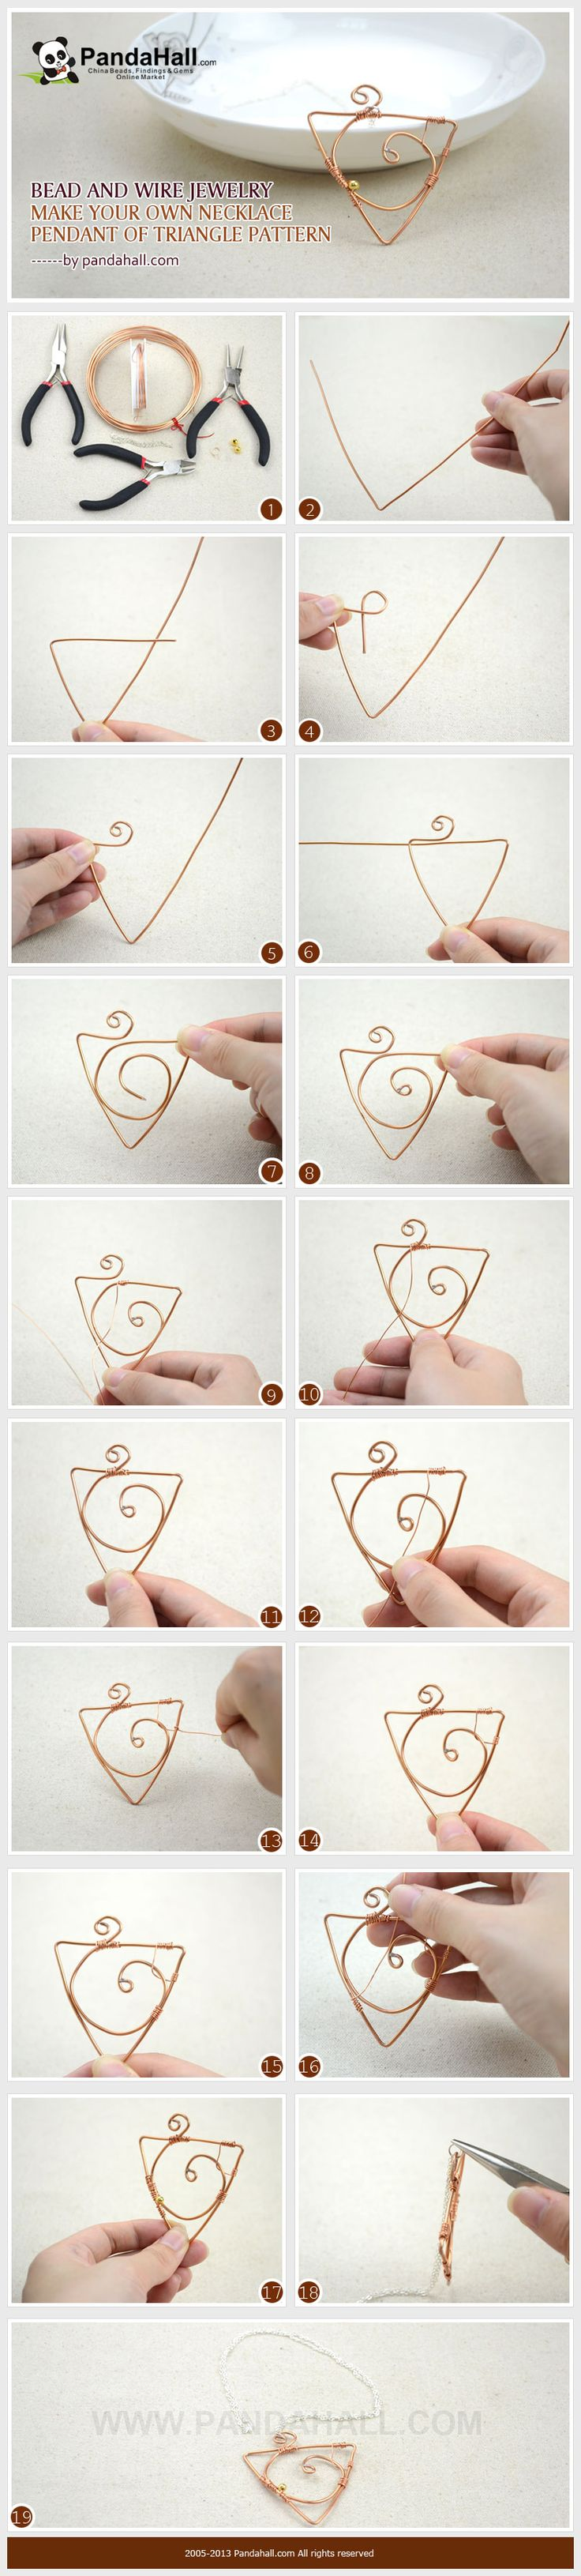 Bead and Wire Jewelry-Make Your Own Necklace Pendant in a Triangle Pattern